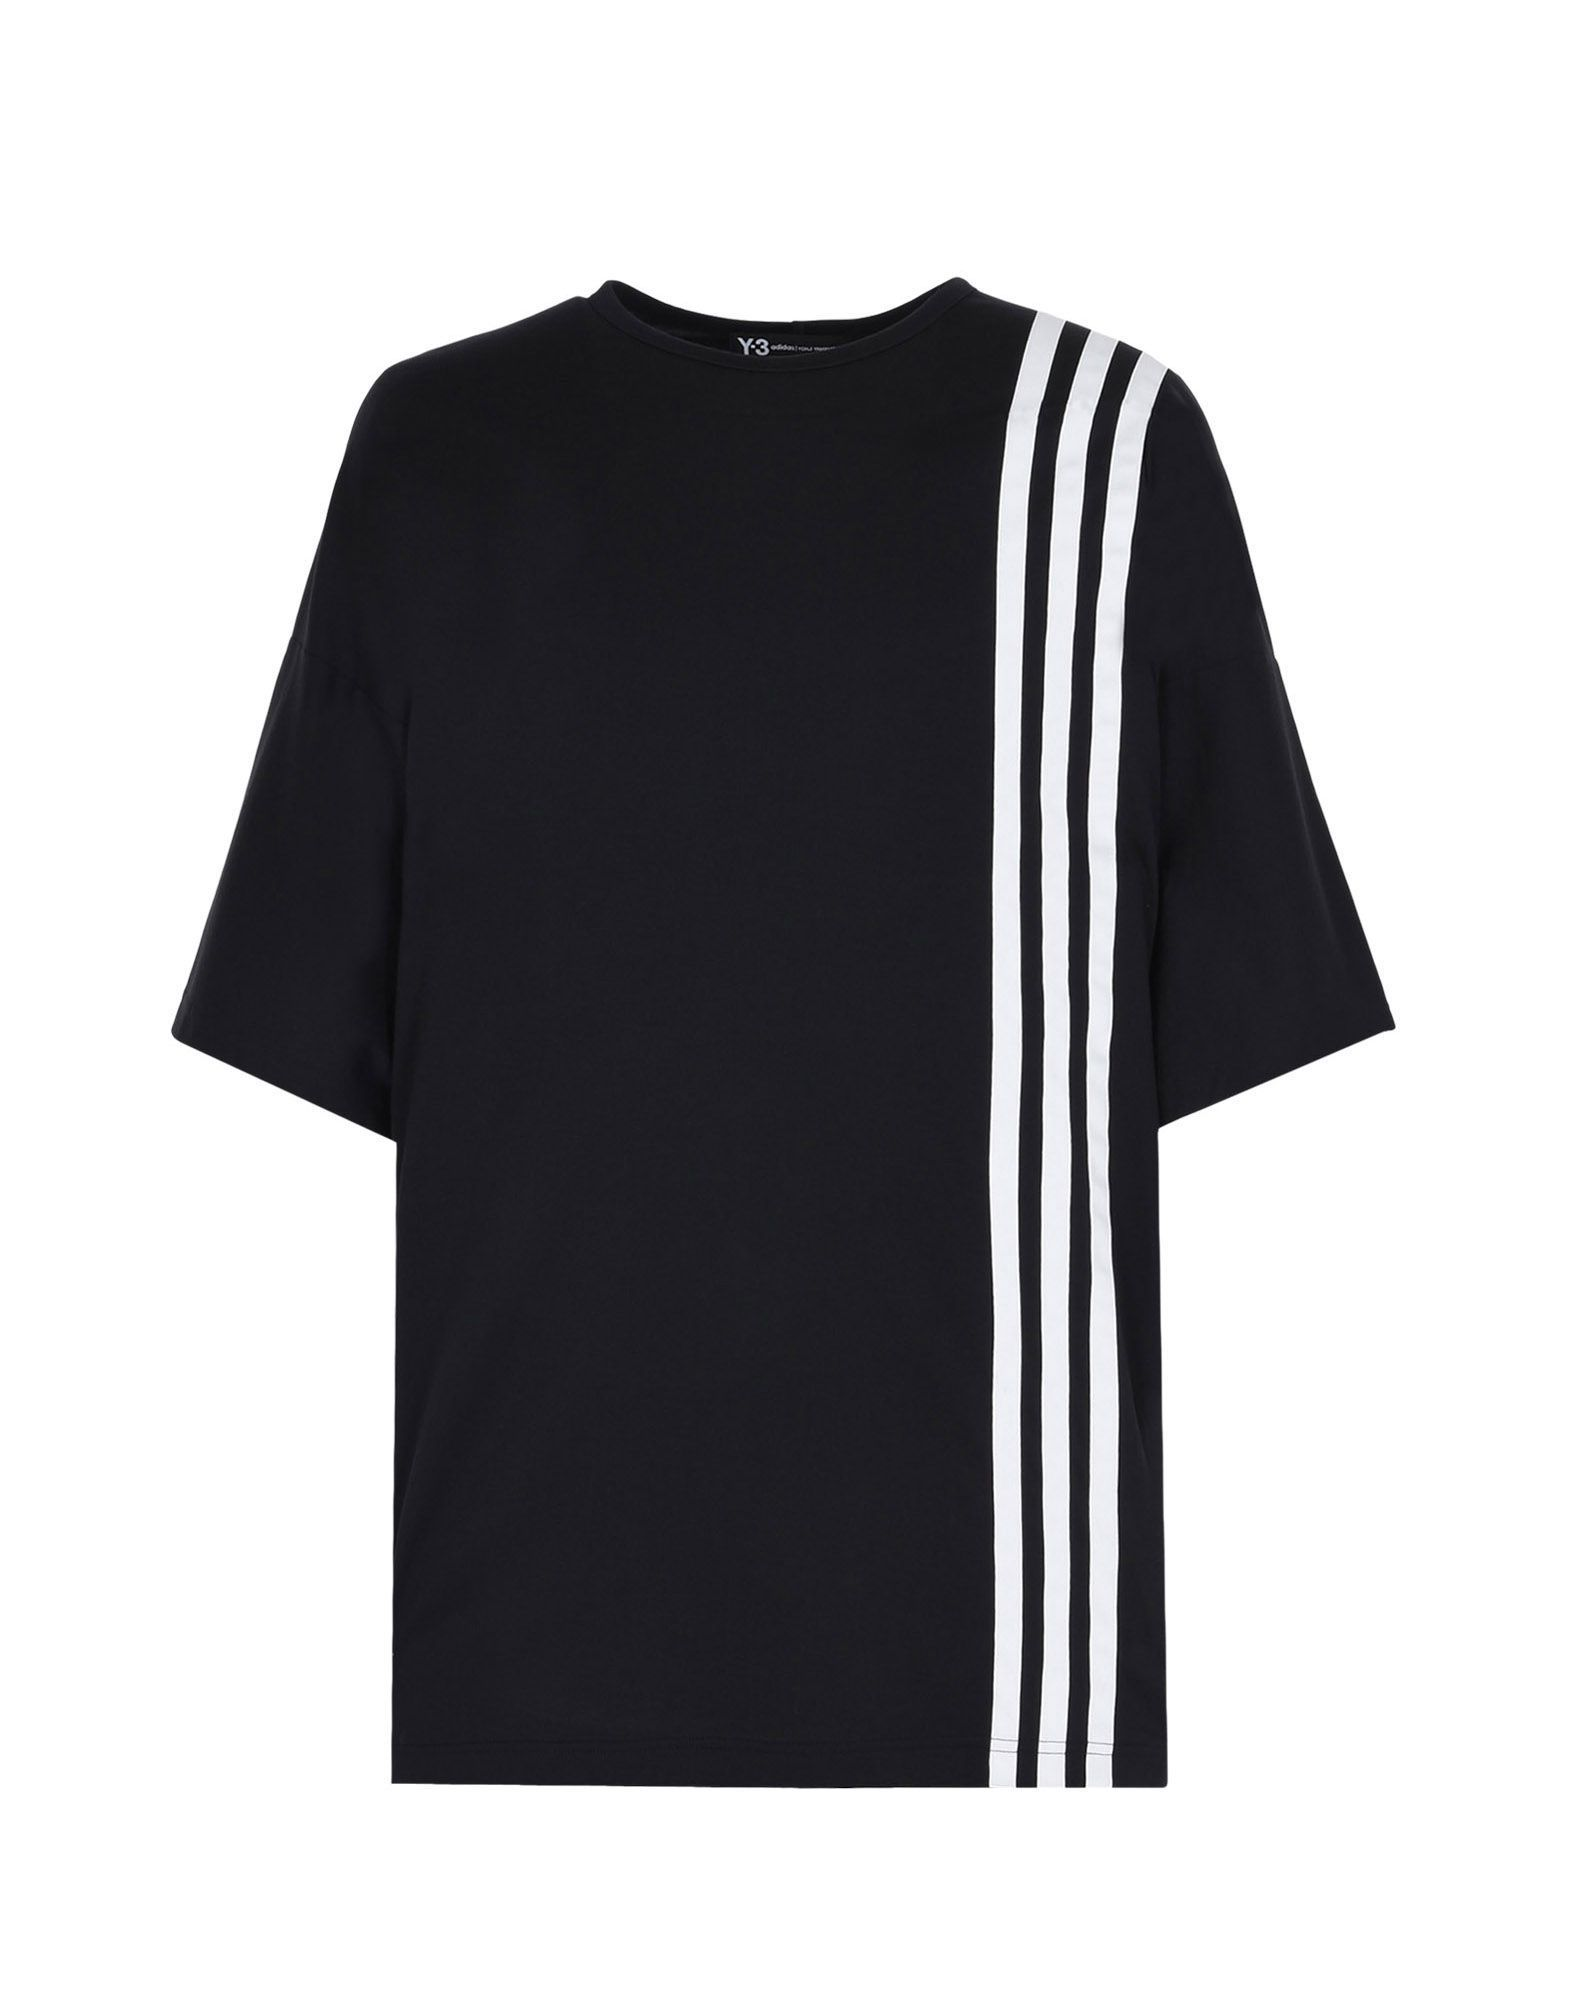 7e7f20819 Y-3 3-STRIPES TEE TEES & POLOS man Y-3 adidas | ROG_Y-3 in 2019 ...